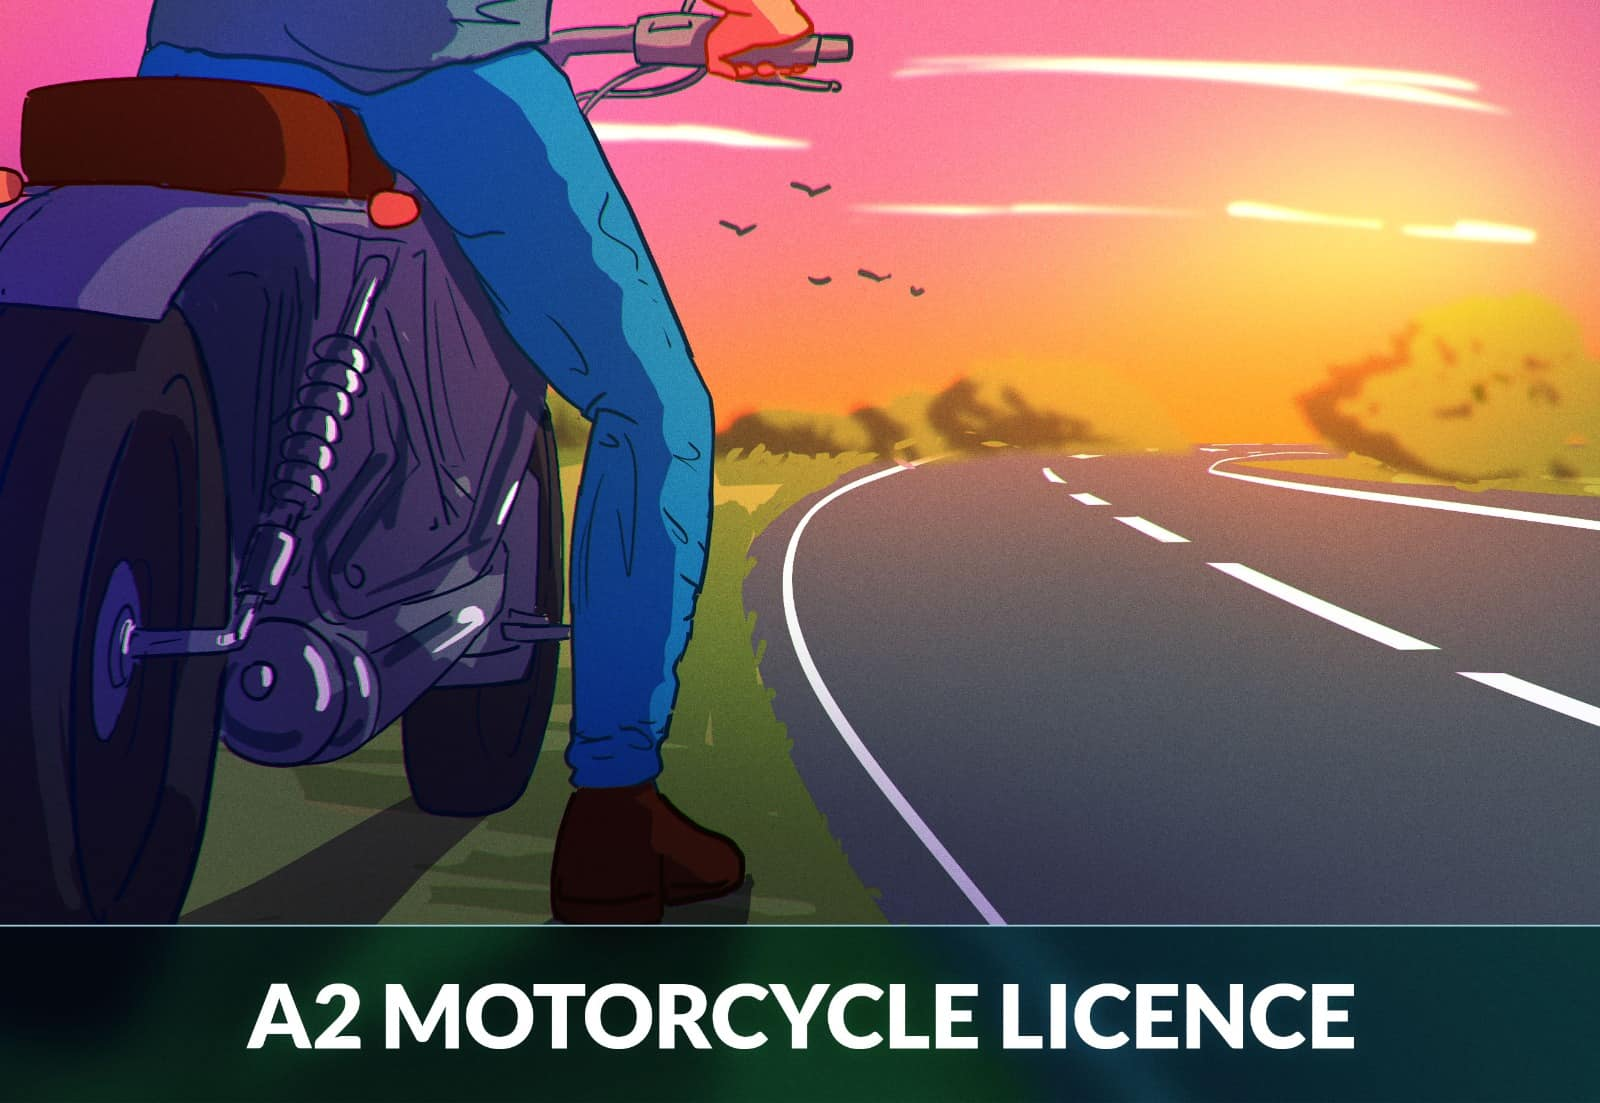 A2 motorcycle licence